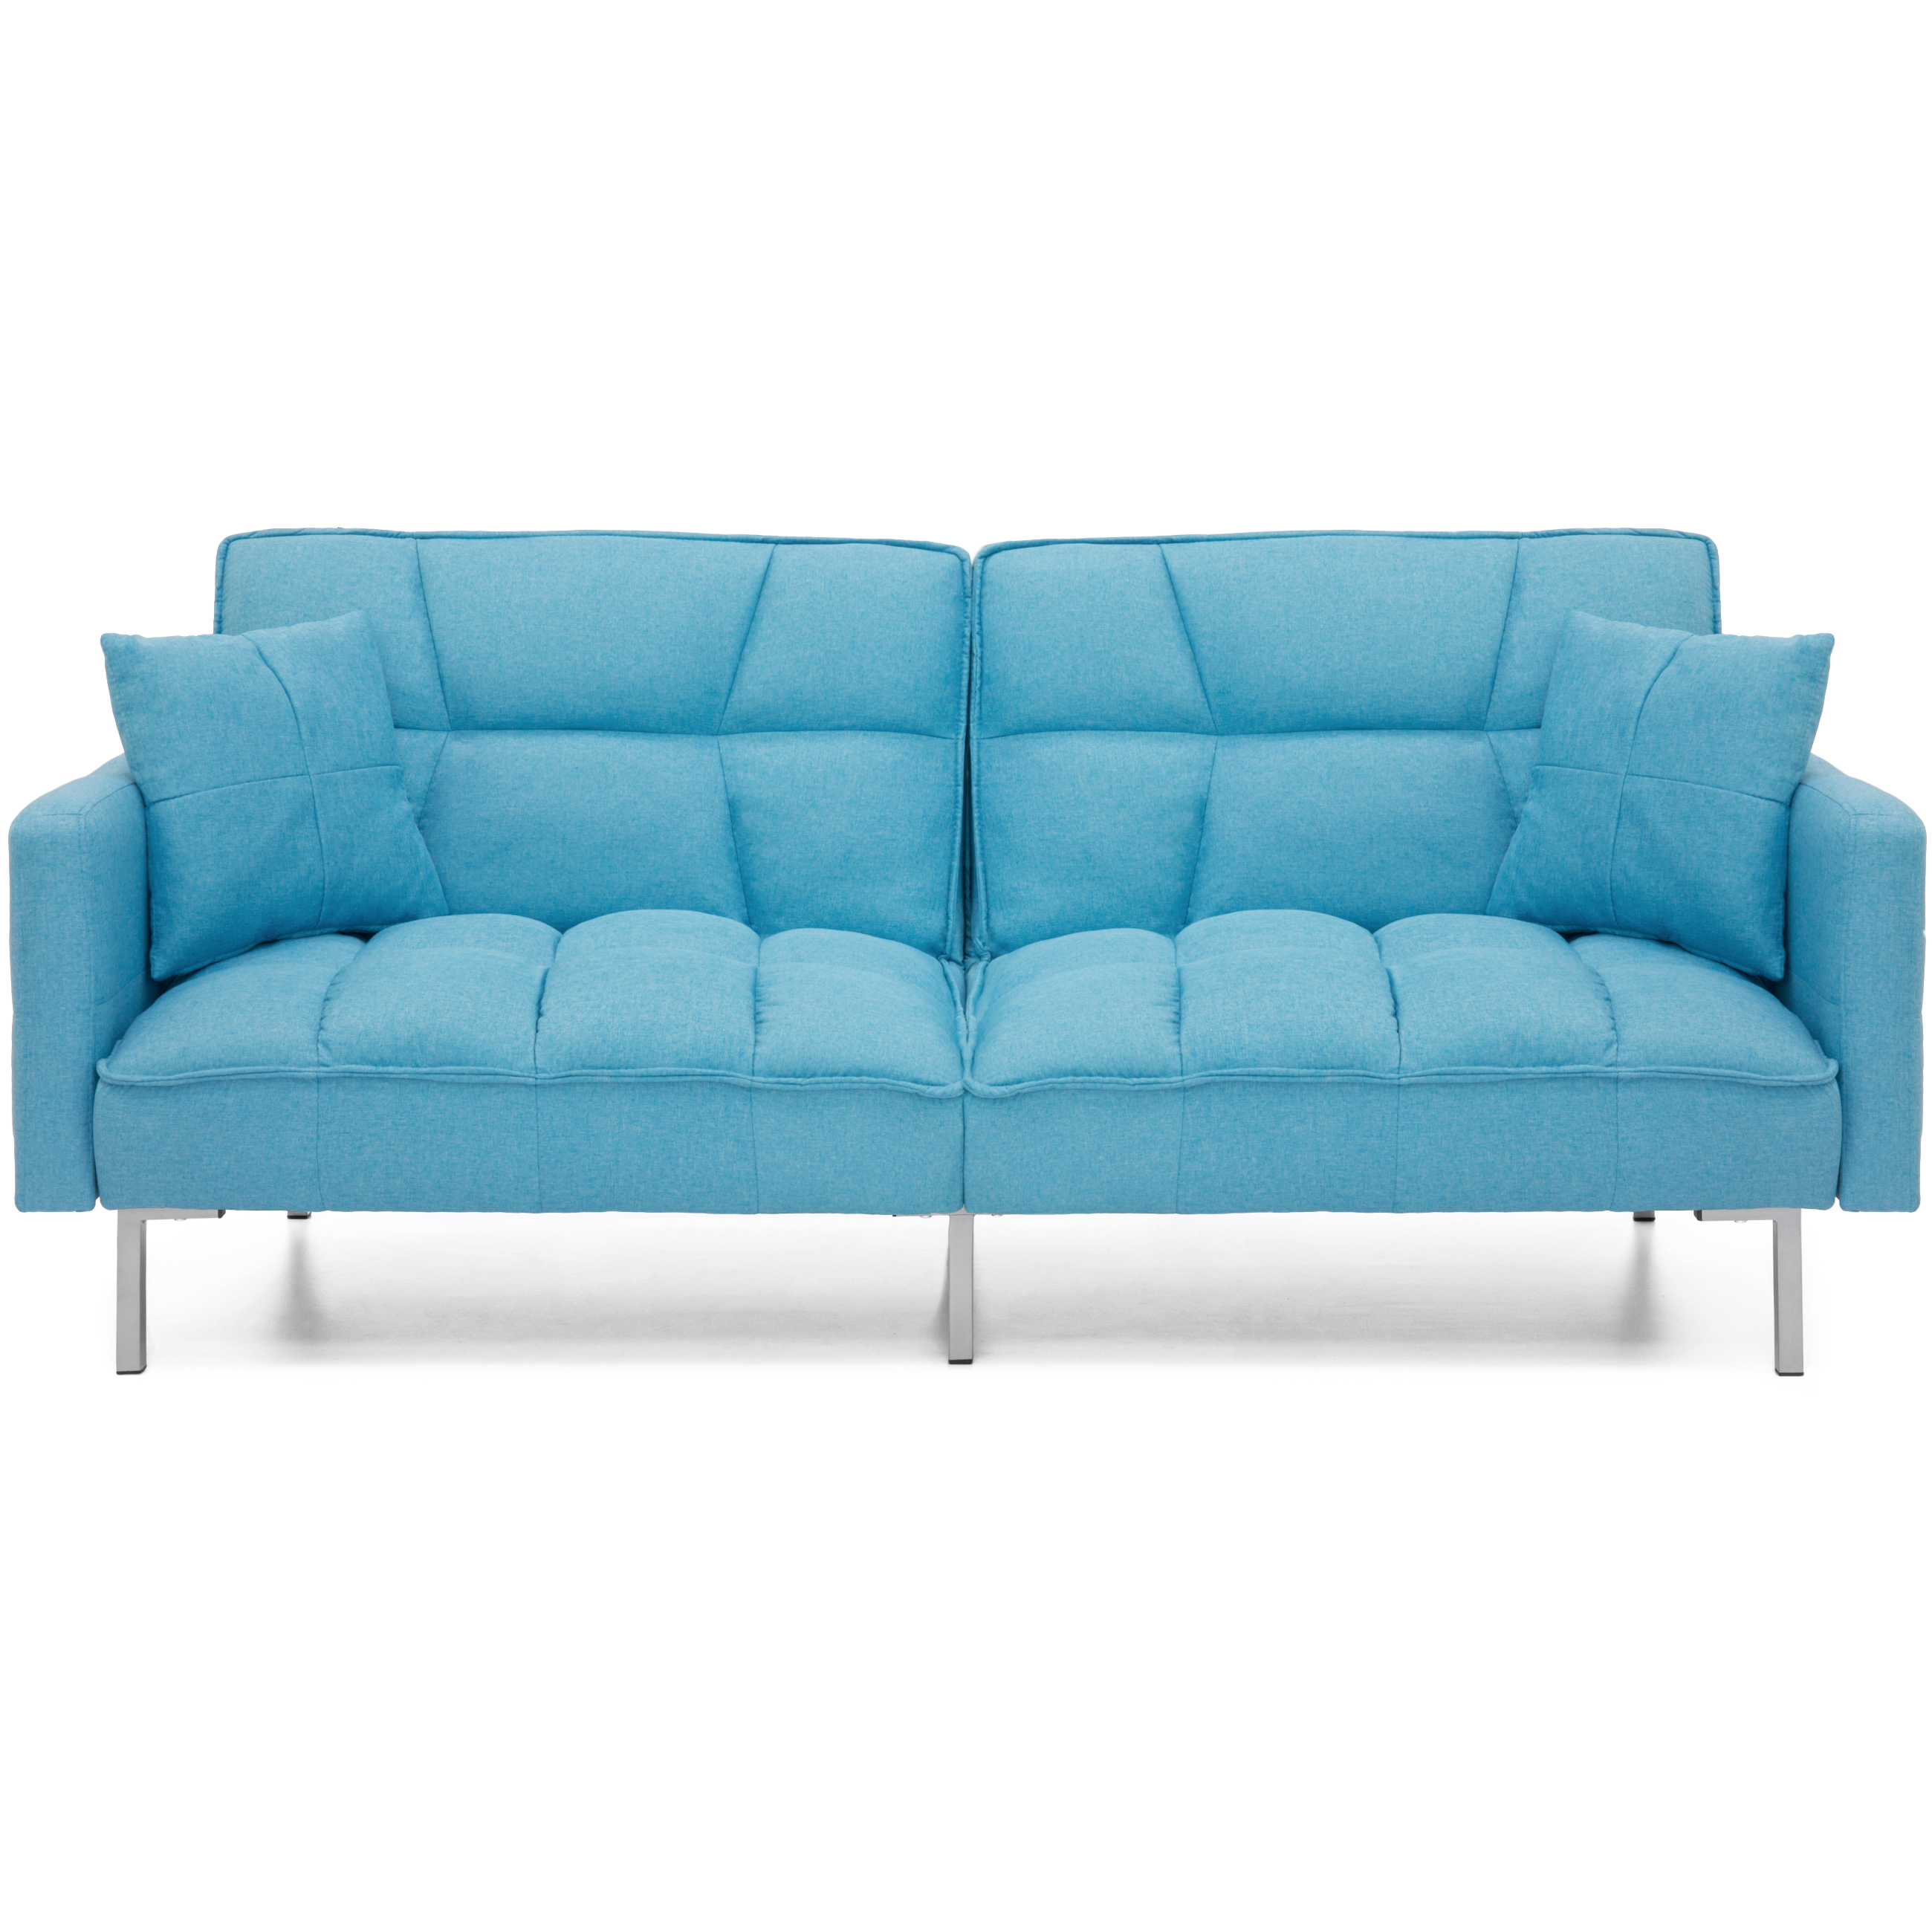 Click here to buy Best Choice Products Home Furniture Convertible Futon Linen Tufted Split Back Couch W ... by Best Choice Products.